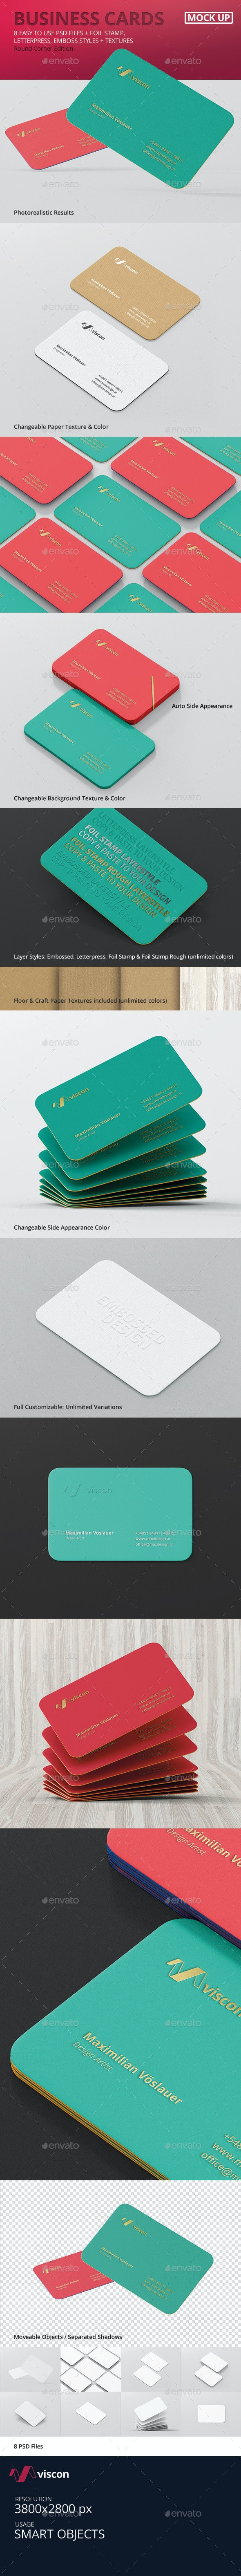 Business Card Mockup Round Corners - Business Cards Print